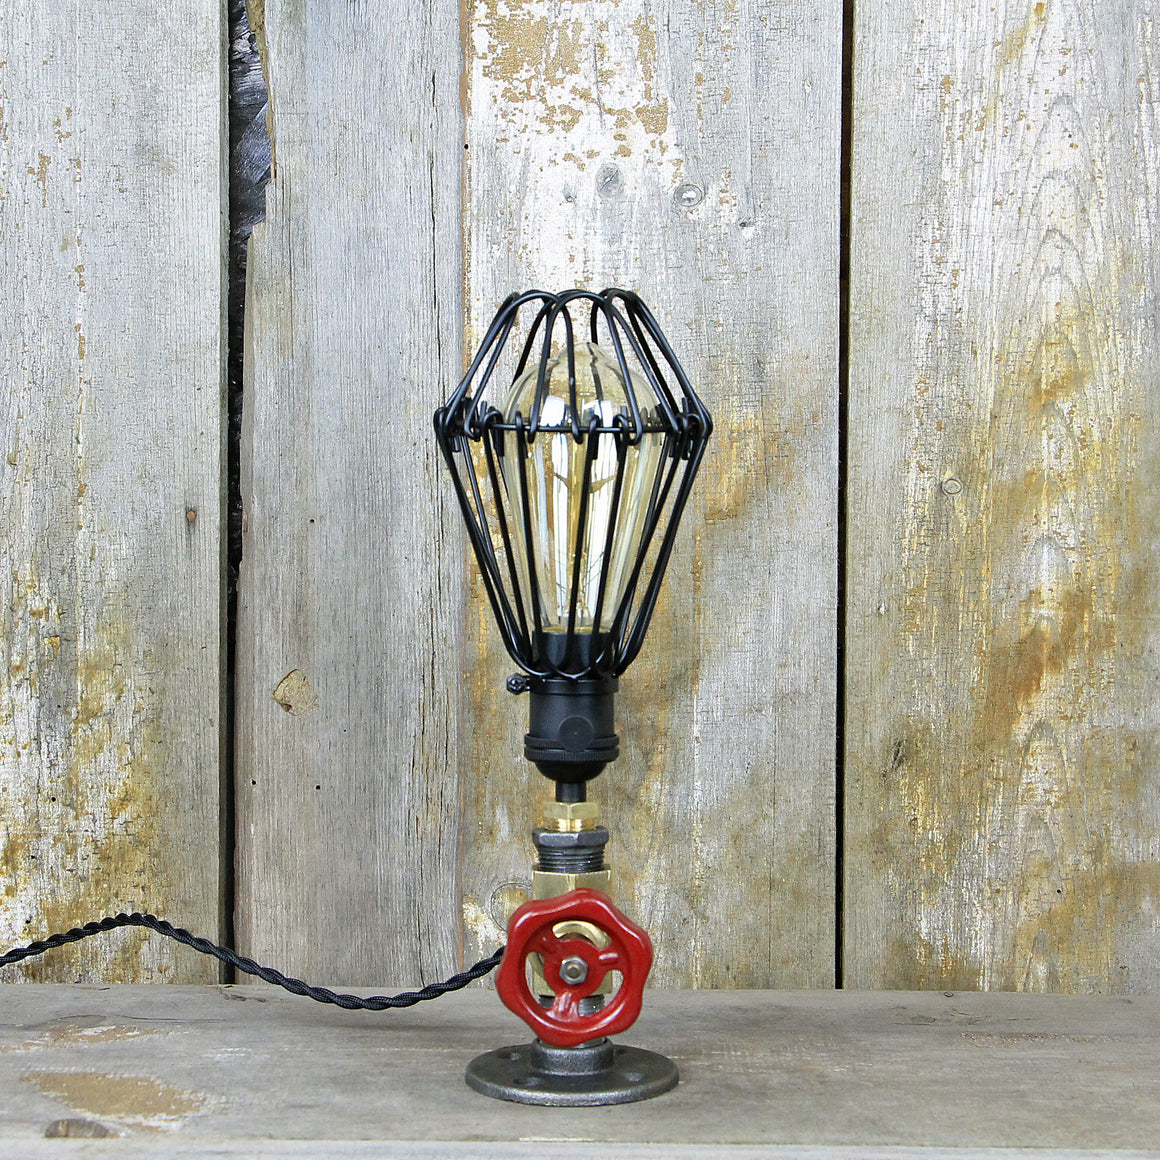 Industrial Table Lamp with a Brass Valve and Red Handle - Steampunk Desk Lamp #82 - The Lighting Works